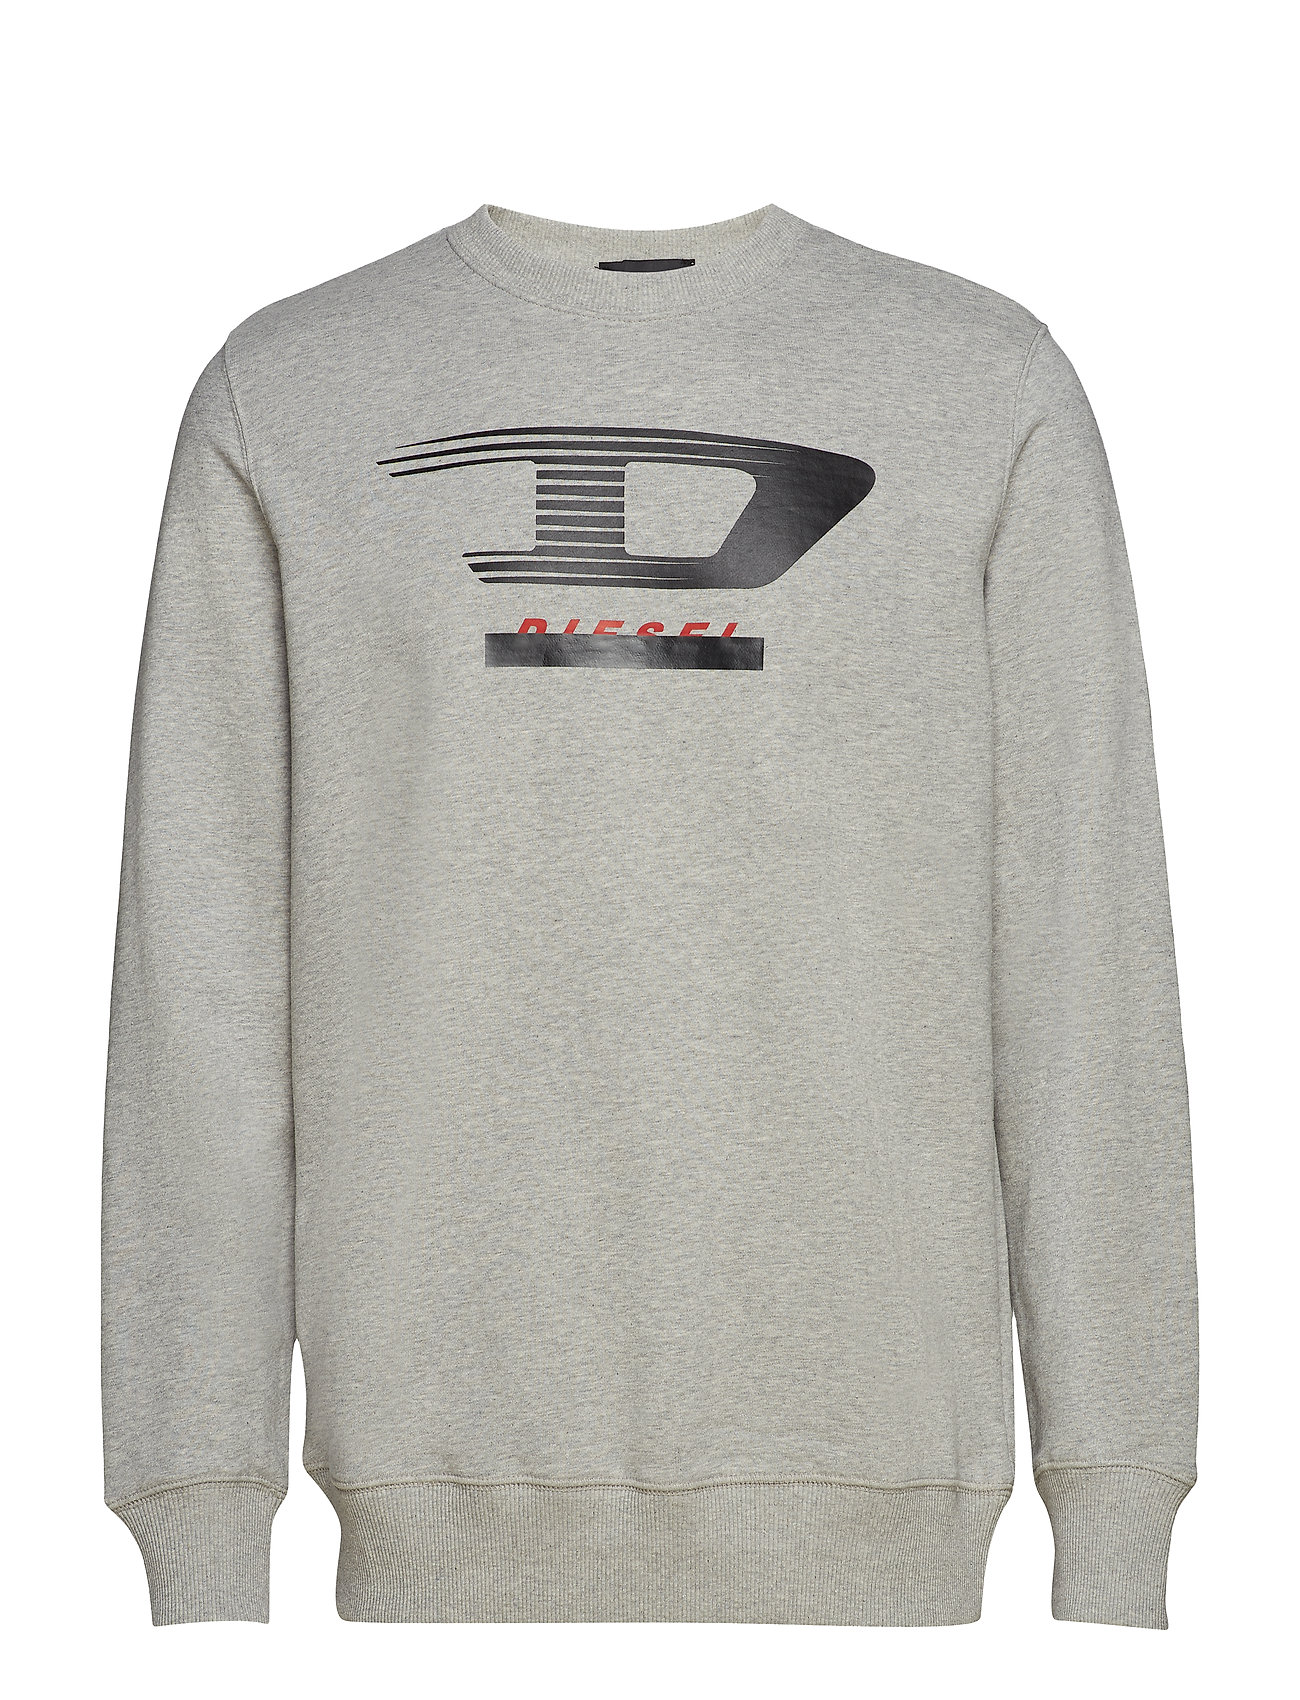 Diesel Men S-GIR-Y4 SWEAT-SHIRT - LIGHT GREY MELANGE